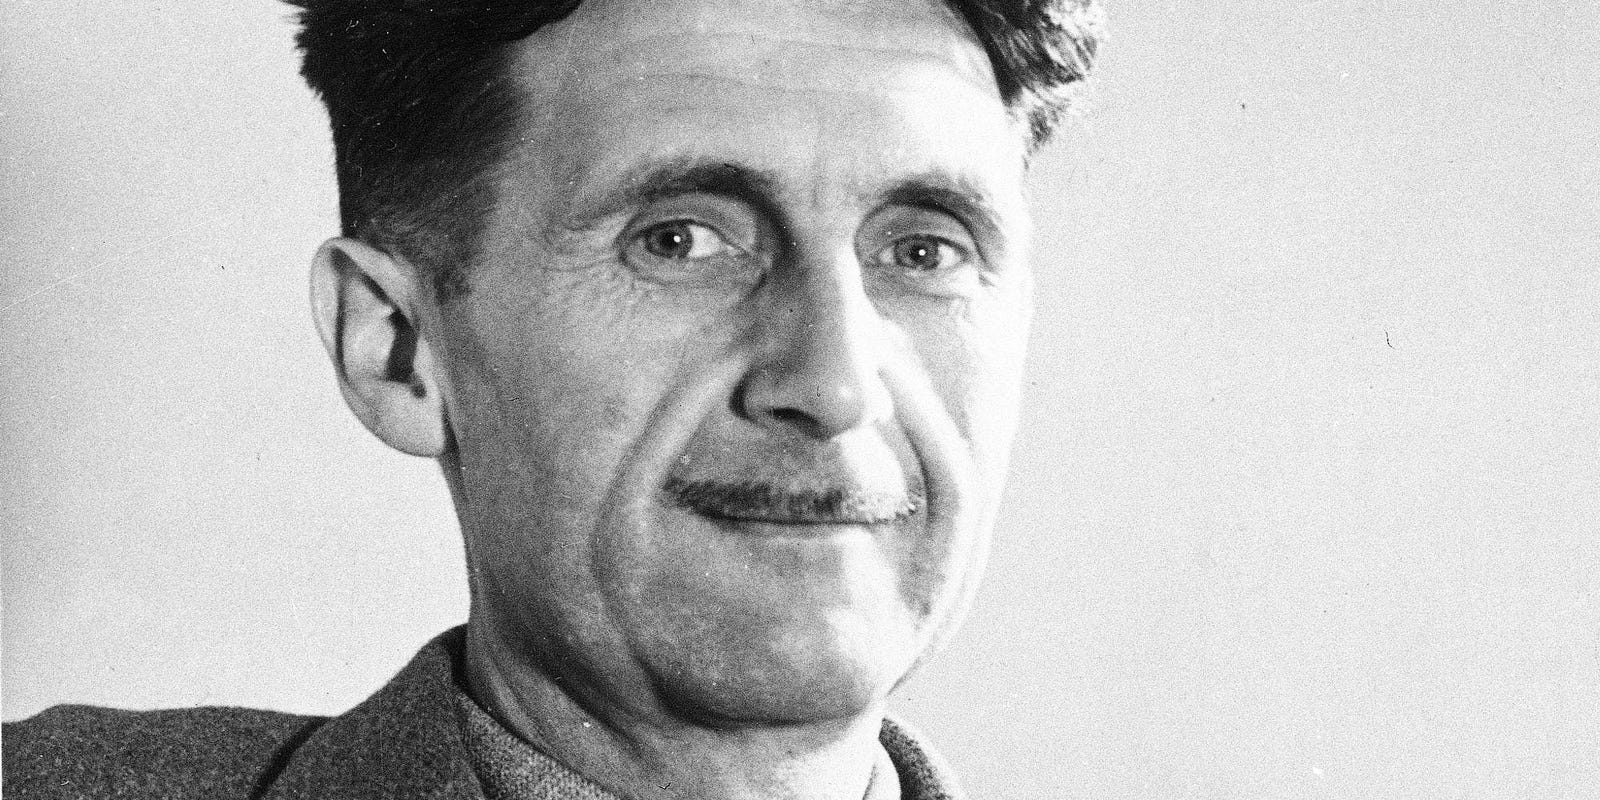 You may be using the term 'Orwellian' wrong. Here's what George Orwell was actually writing about